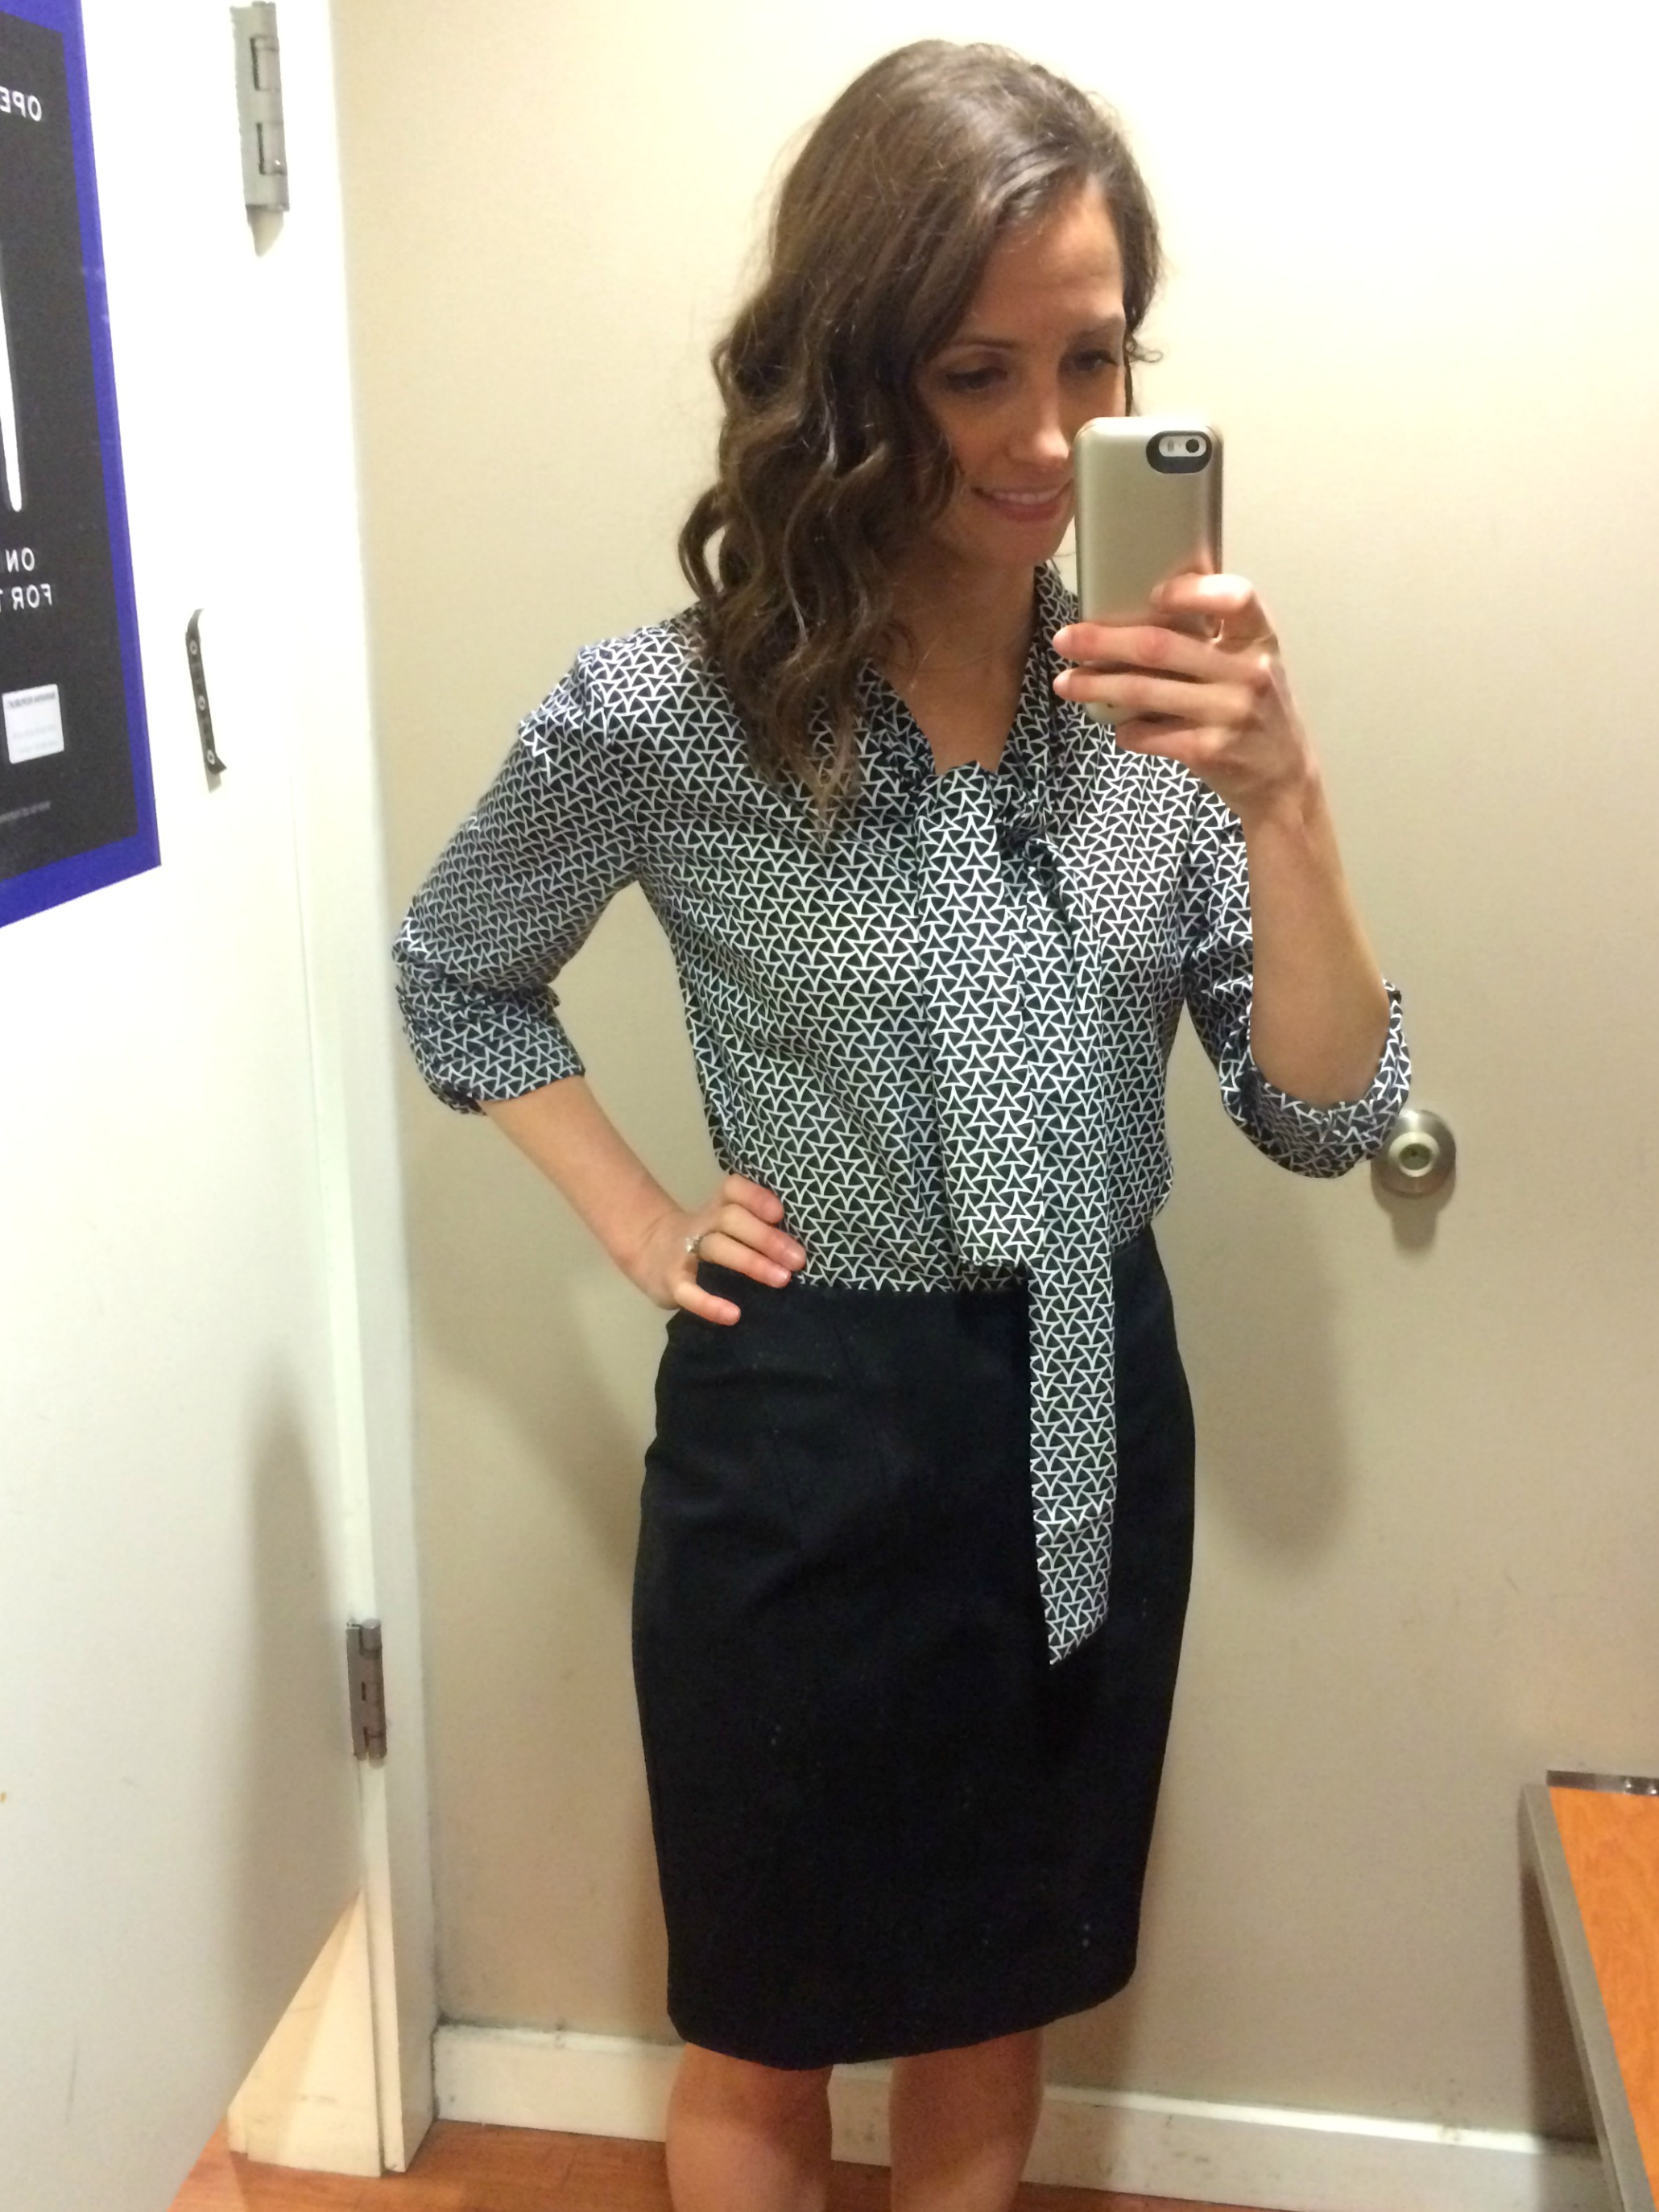 heather trying on interview clothes